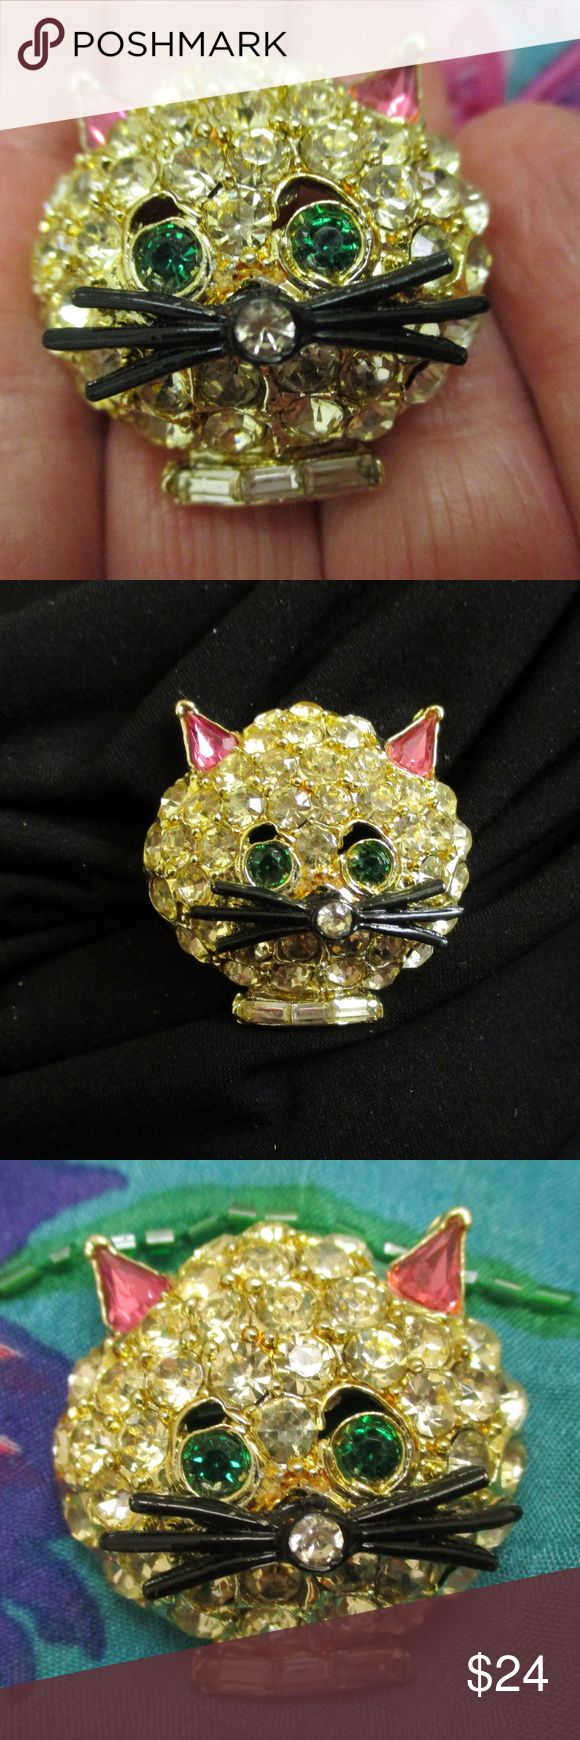 """Viintage Pave Set Rhinestone Feline Cat Brooch Glittering vintage pave set rhinestone cat kitten brooch.  Clear faceted crystal rhinestones are pave set into gold tone metal. Two faceted green rhinestone eyes, pink faceted teardrop ears, six black enamel cat whiskers and three clear baguette rhinestone collar complete this charming feline pin. 1 3/8"""" x 1 1/2"""" x 1/2"""" deep. Secure rollover clasp. Perfect three-dimensional brooch for the cat lover or collector of figural jewelry. Photos cannot…"""